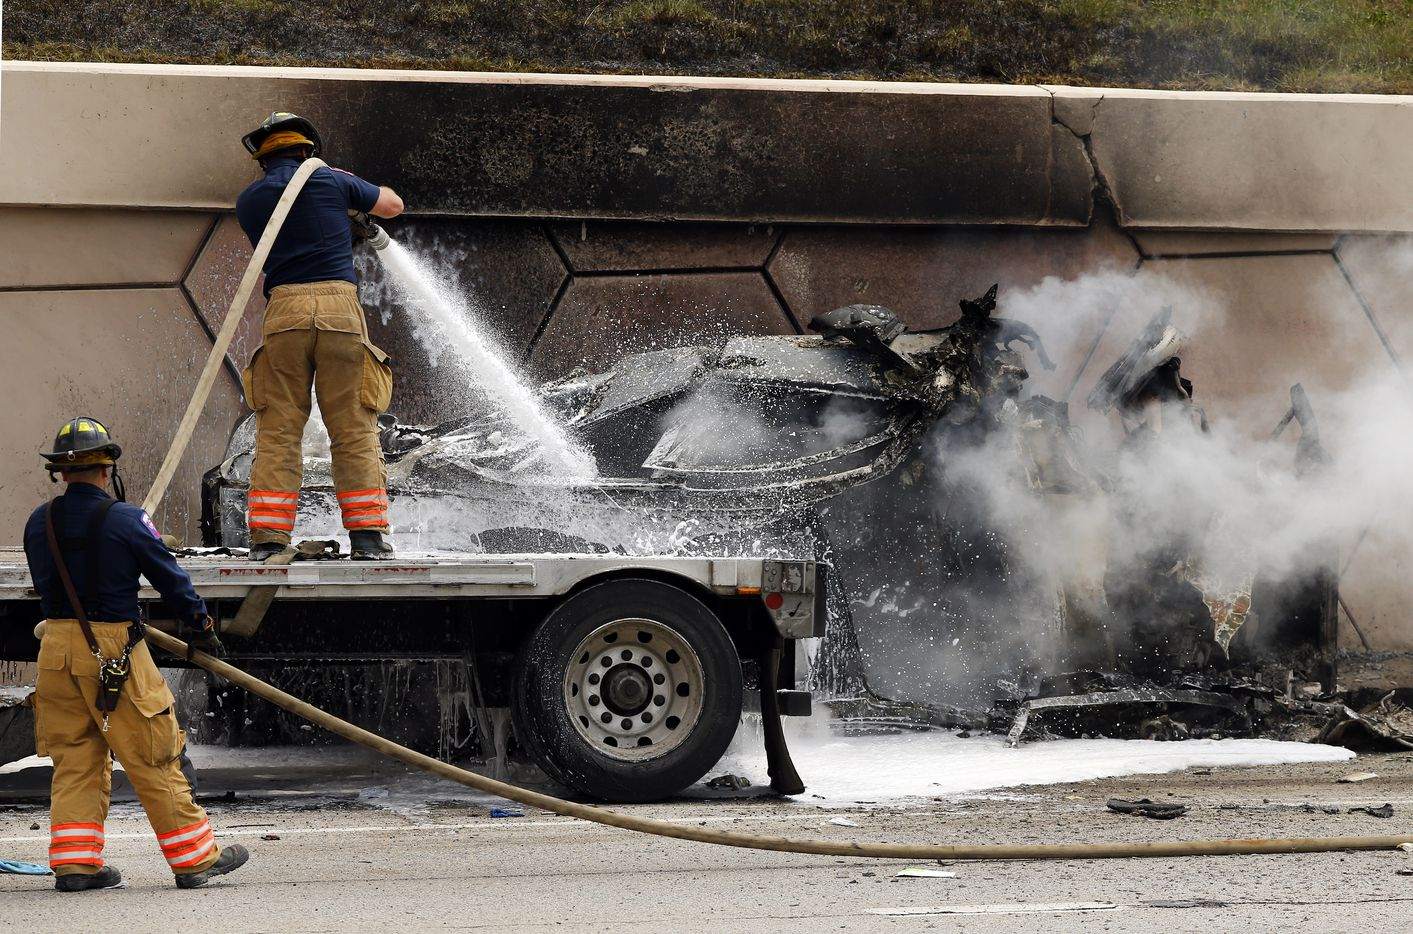 Arlington firefighters douse a burned out vehicle following a standoff with a man in a wrecked semi truck. The truck was involved in a high speed chase on Interstate 30 at Cooper St. in Arlington where it wrecked another vehicle causing the fire, Friday, June 9, 2017. The vehicle was between the truck and the wall of the interstate. (Tom Fox/The Dallas Morning News)